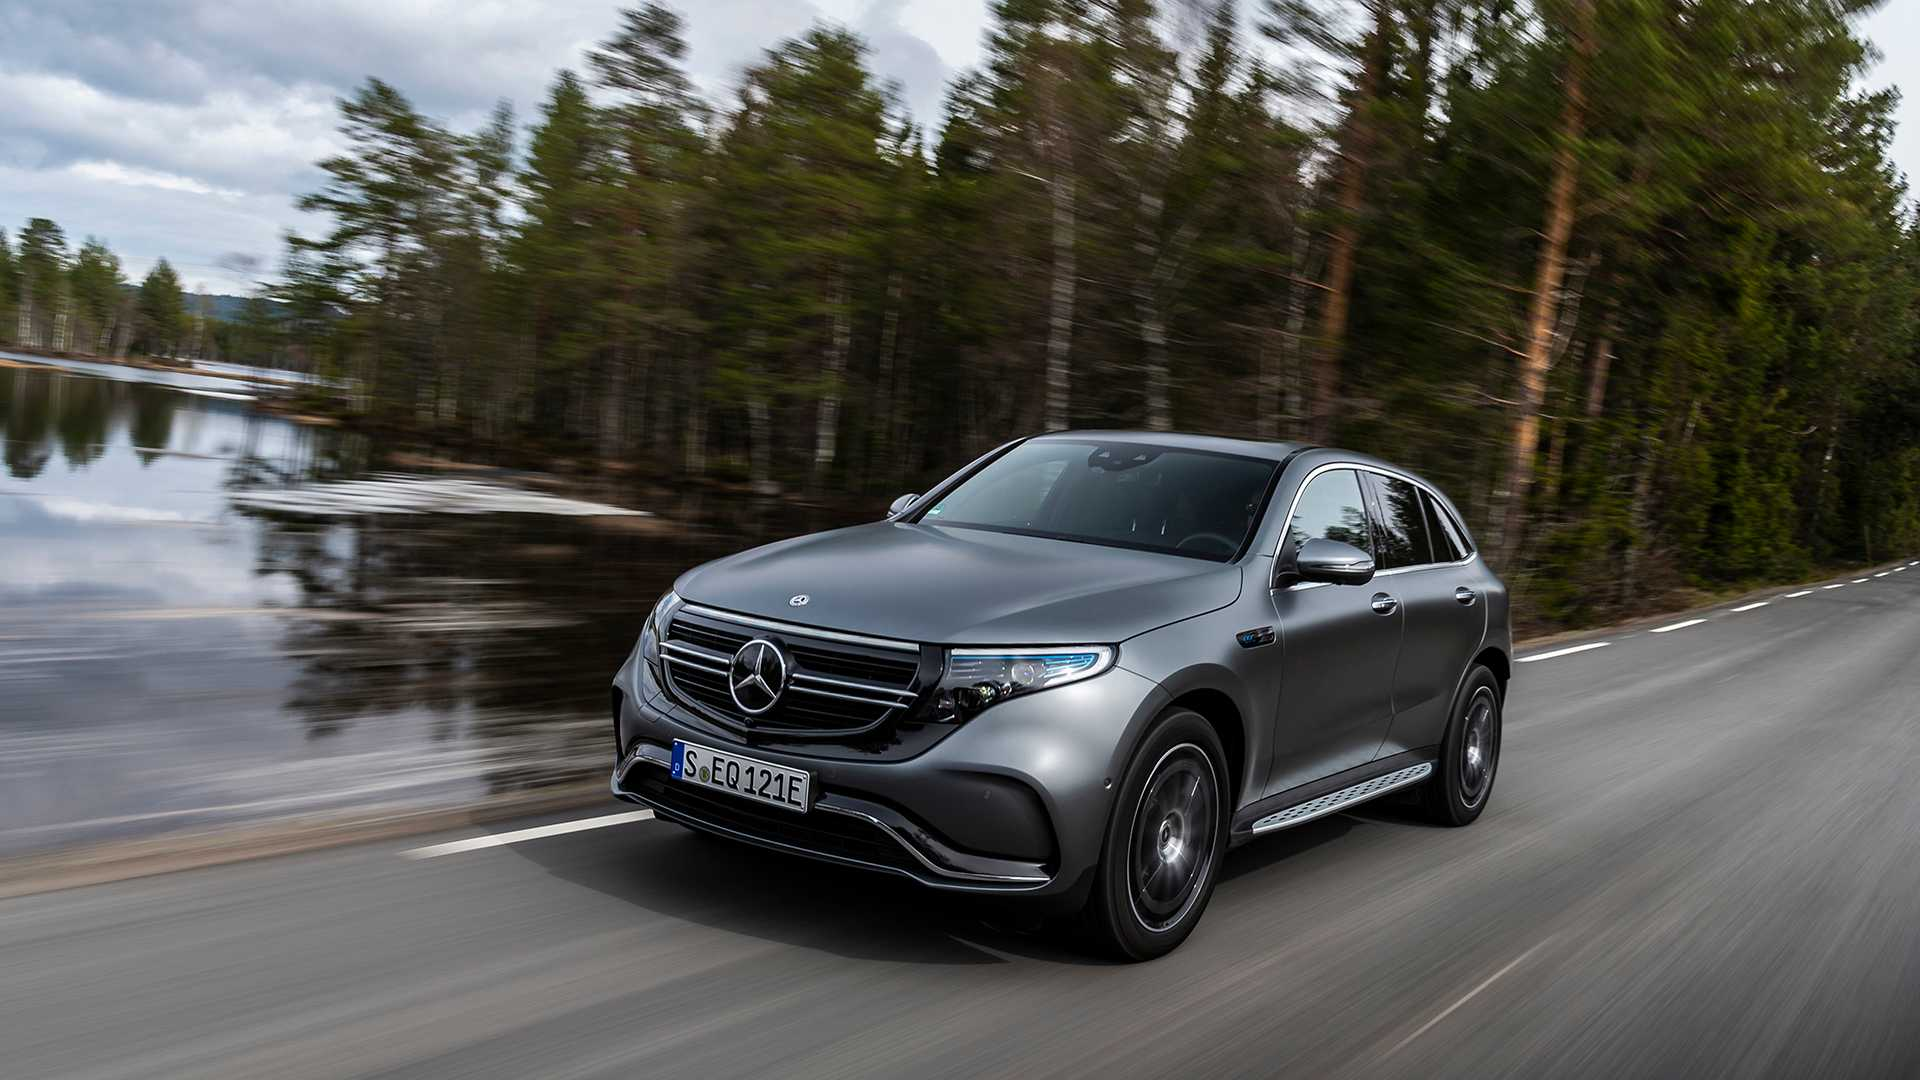 Look of THE LATEST MERCEDES BENZ EQC AVAILABLE AT 1 CR